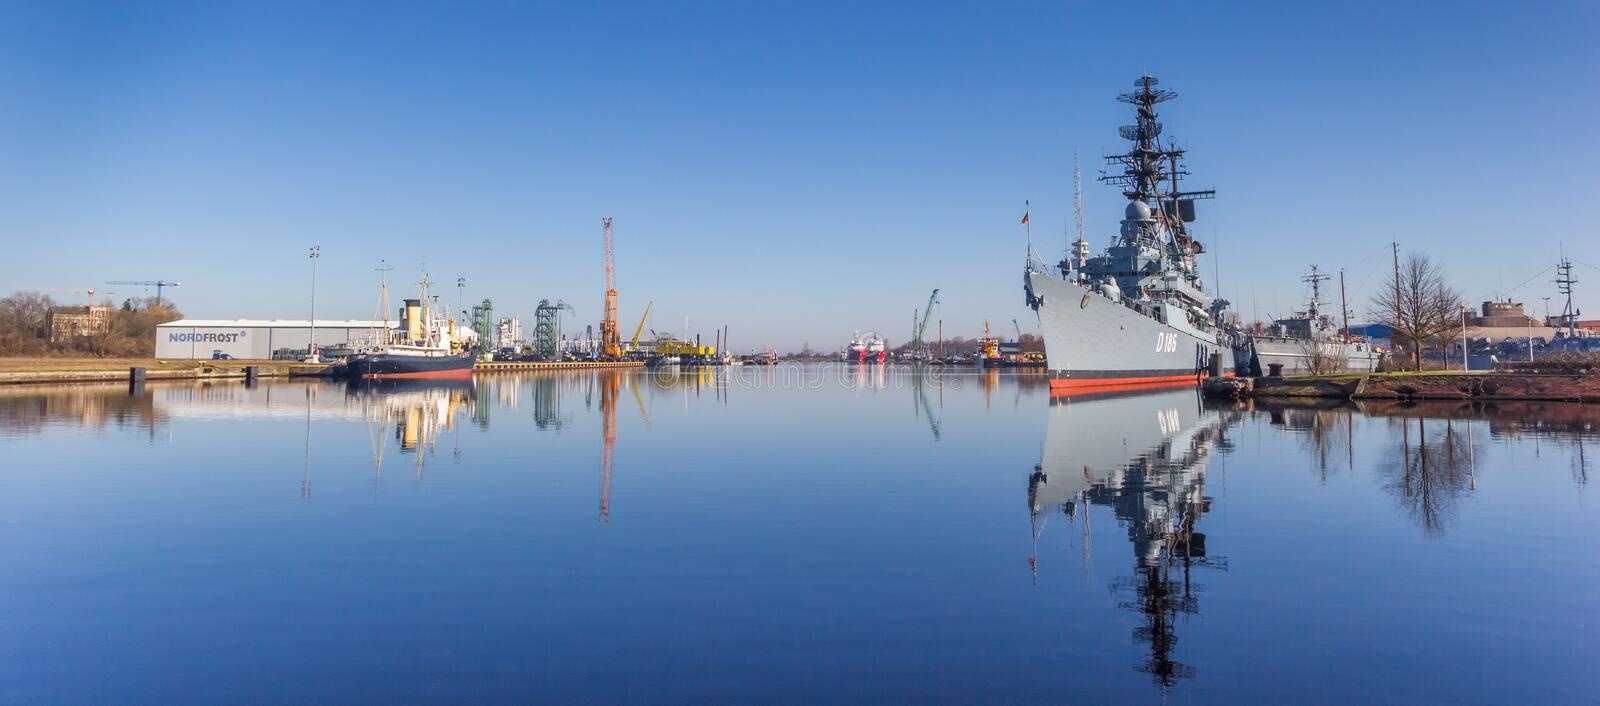 Panorama of the marine warship in the harbor of Wilhelmshaven royalty free stock photos